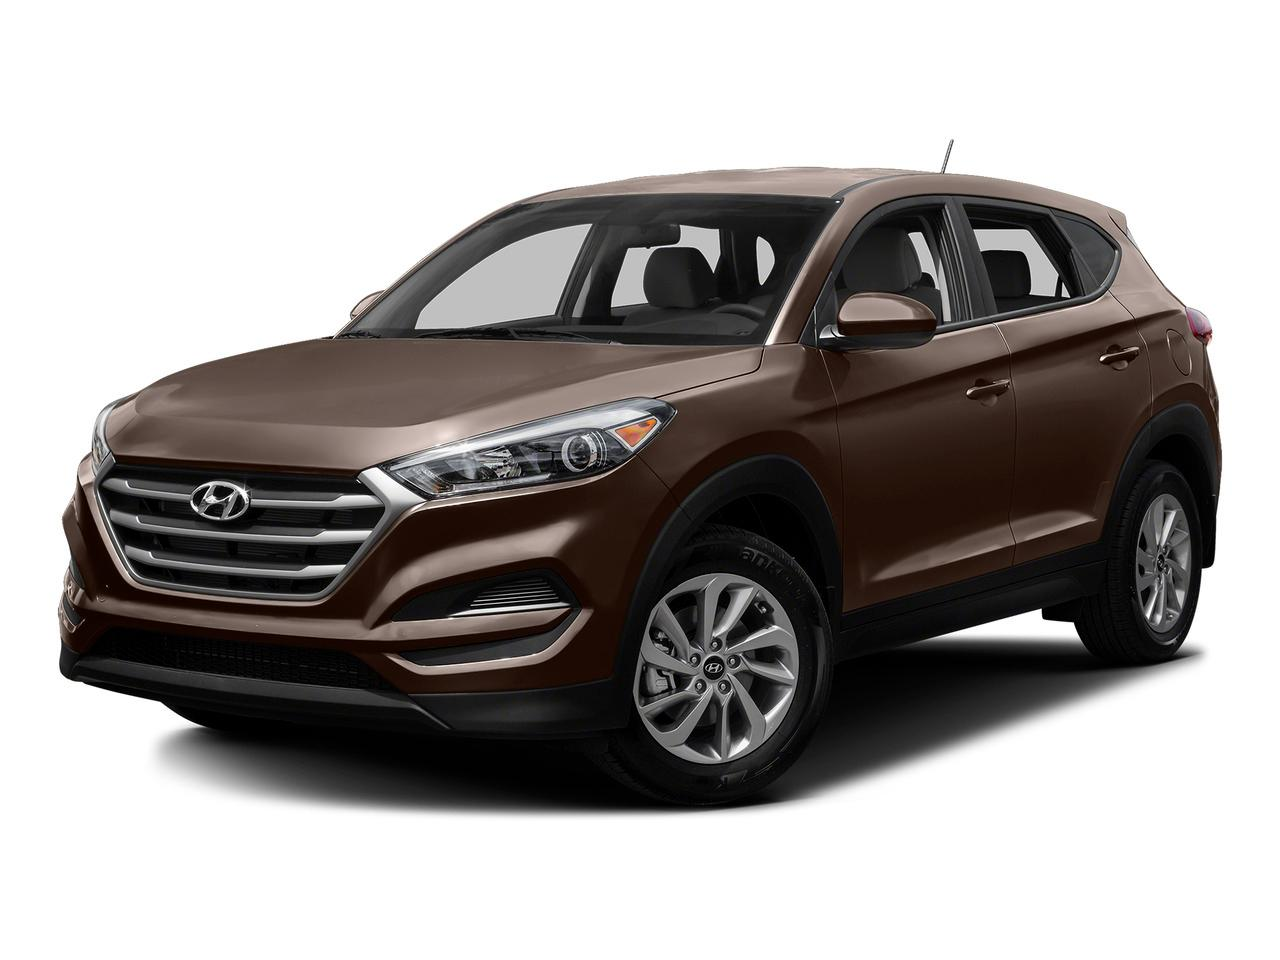 2016 Hyundai Tucson Vehicle Photo in Jasper, GA 30143